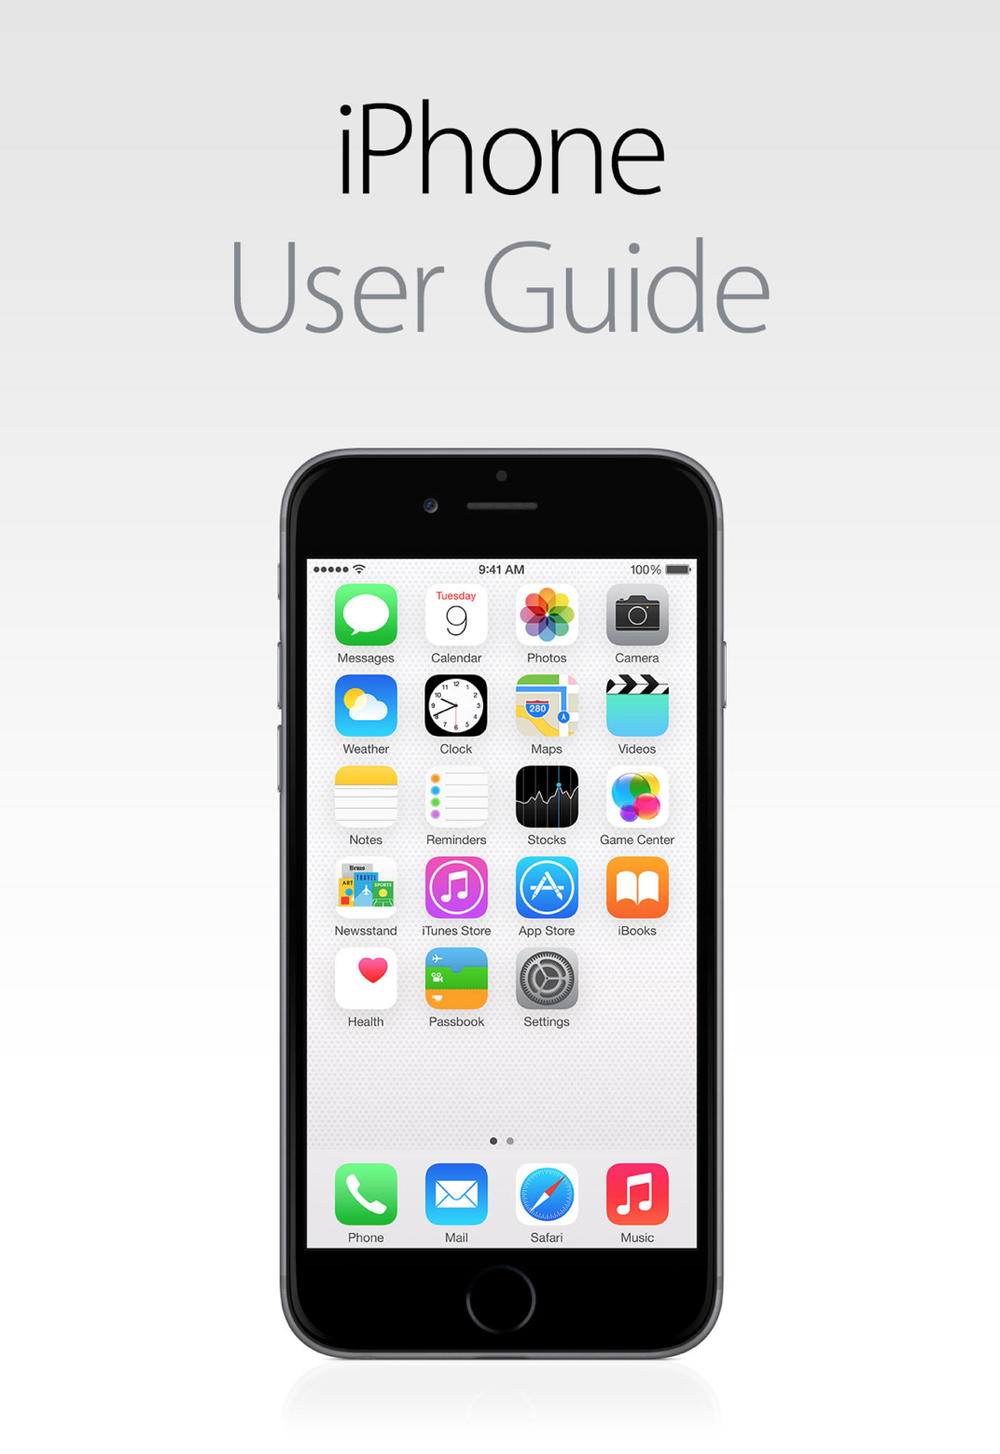 download apple s free iphone user guide for ibooks allgaier rh allgaierconsulting com iphone 4 user guide pdf download iPhone X User Guide